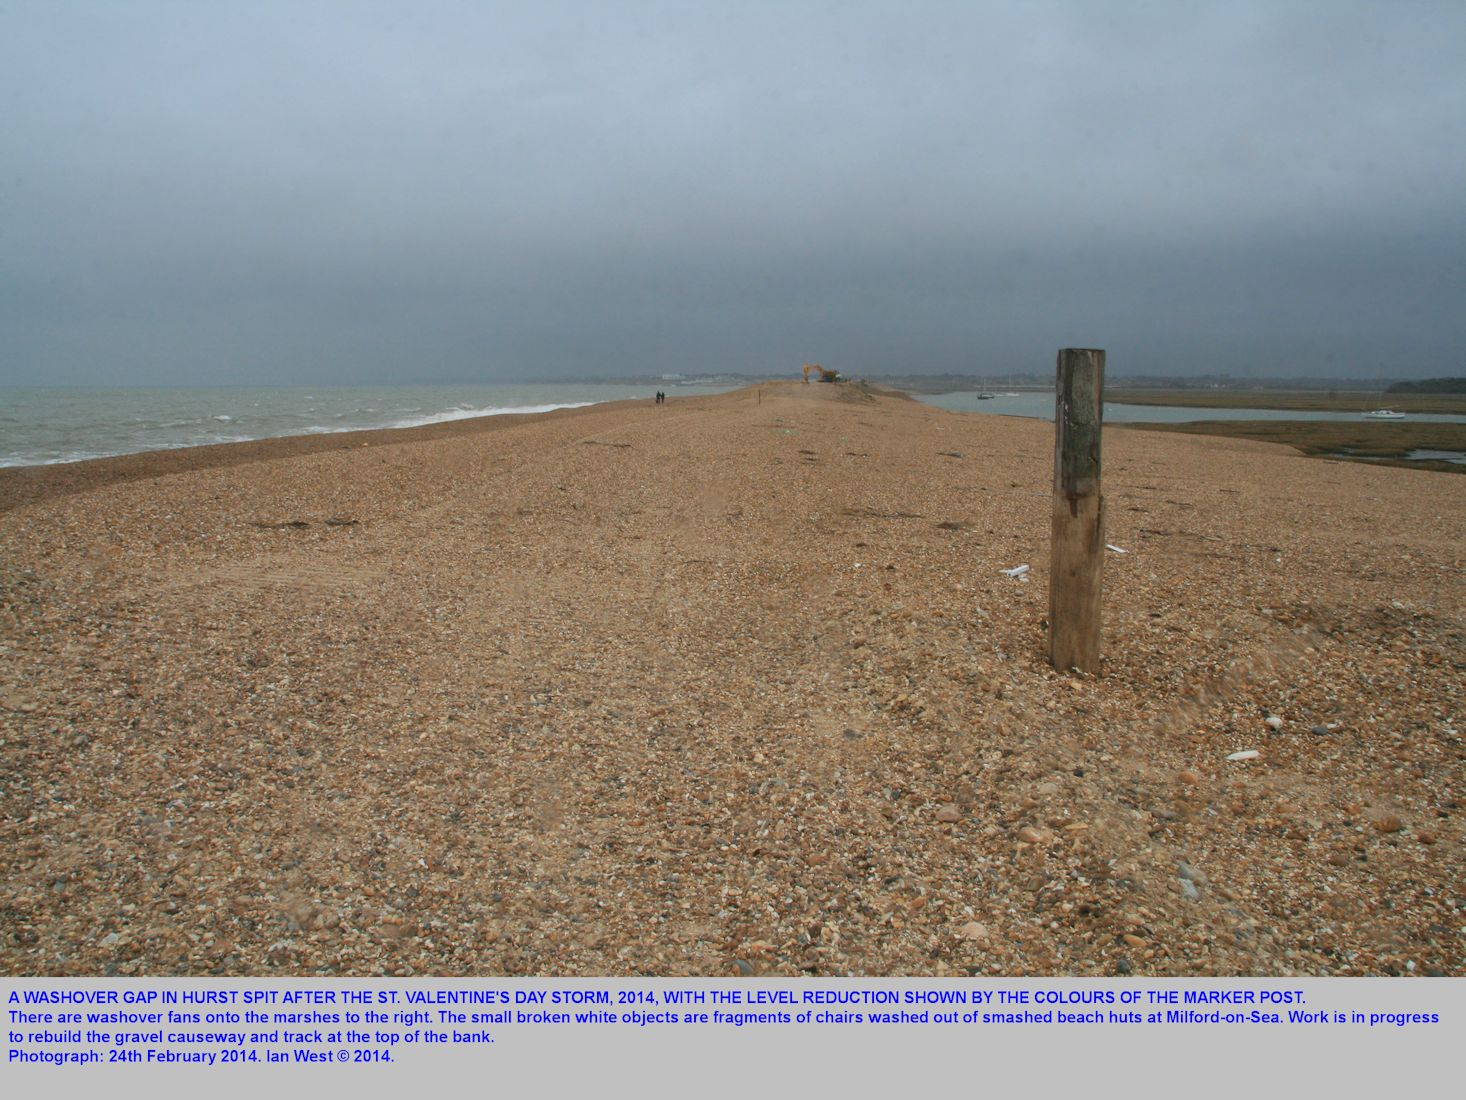 A marker post shows the extent of beach-lowering at a washover gap on  Hurst Spit, Hampshire, after the St. Valentine's Day Storm, photograph 24th February 2014